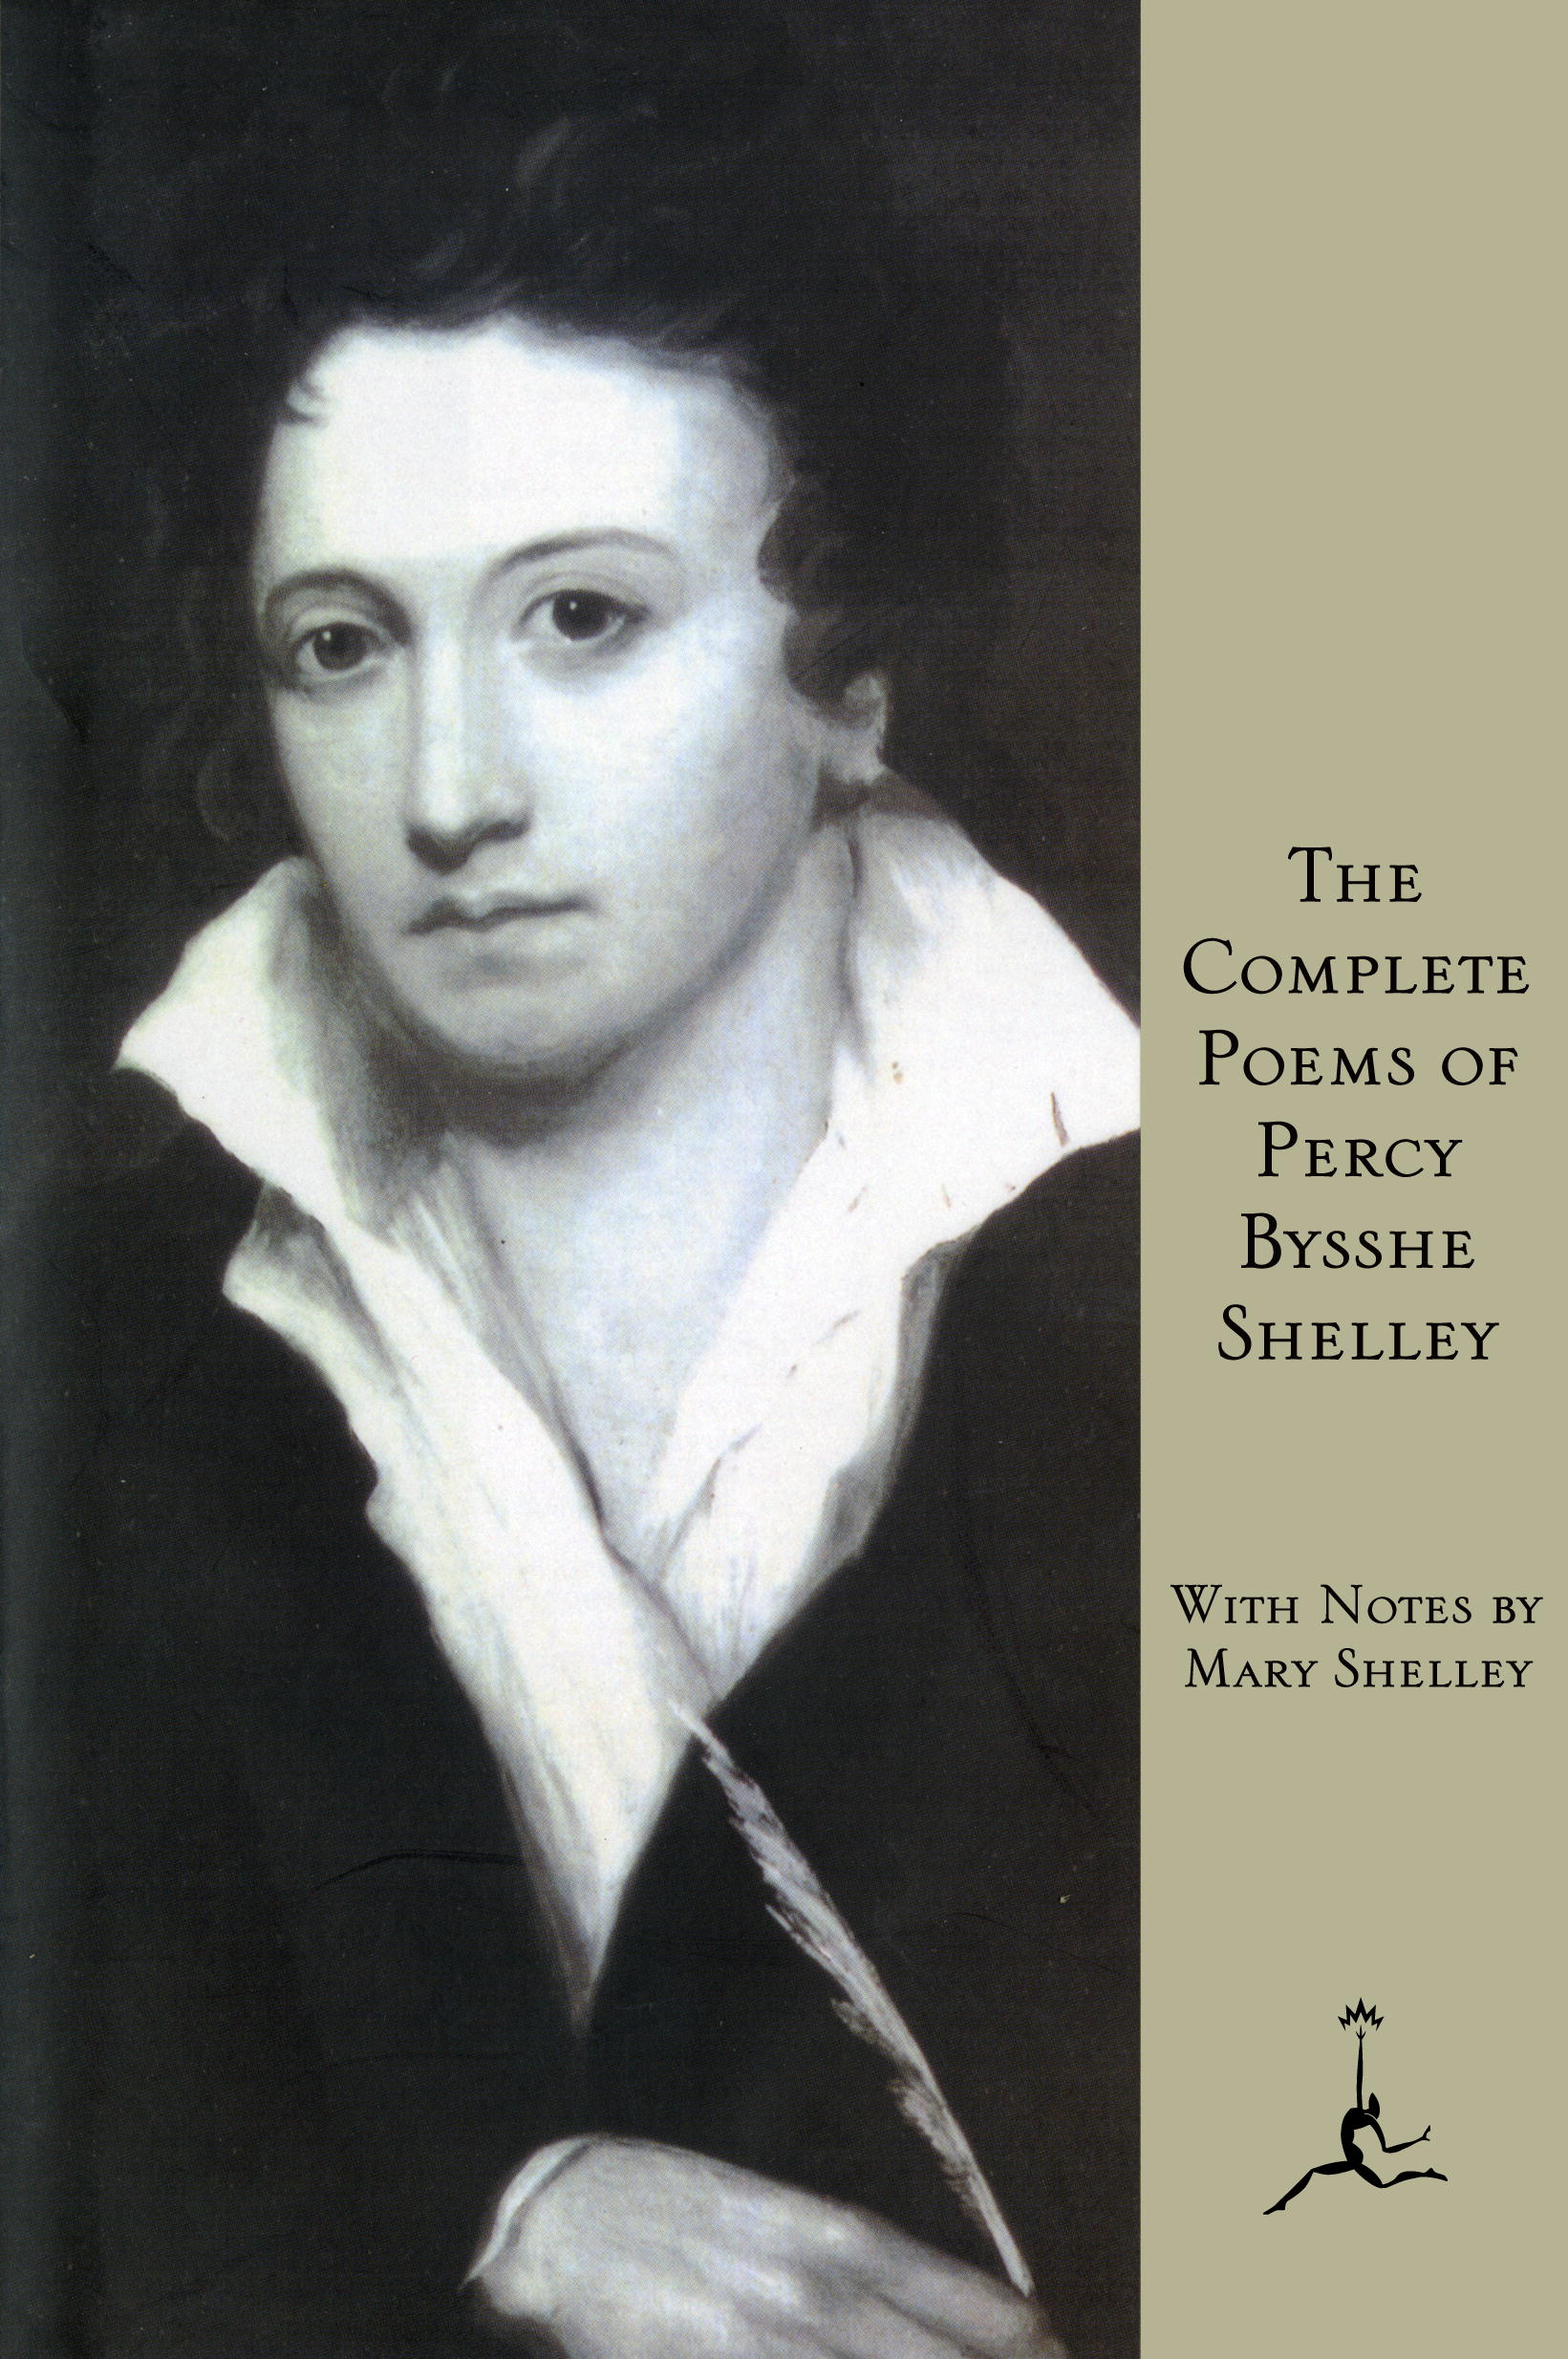 The Complete Poems of Percy Bysshe Shelley